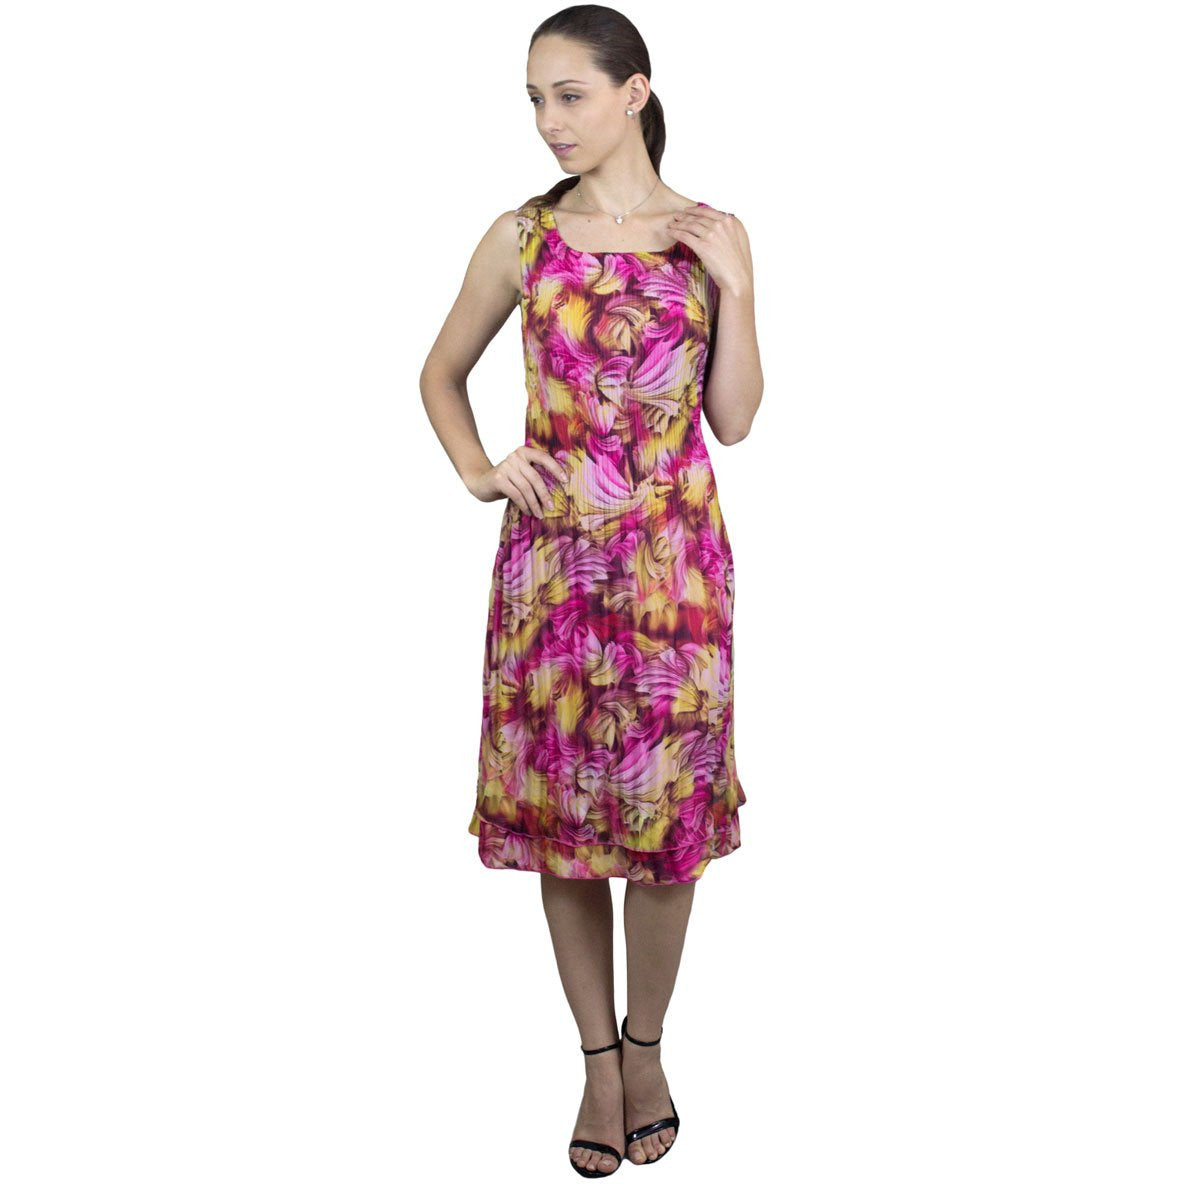 Sleeveless Spring Print Crinkle Dress - Pink